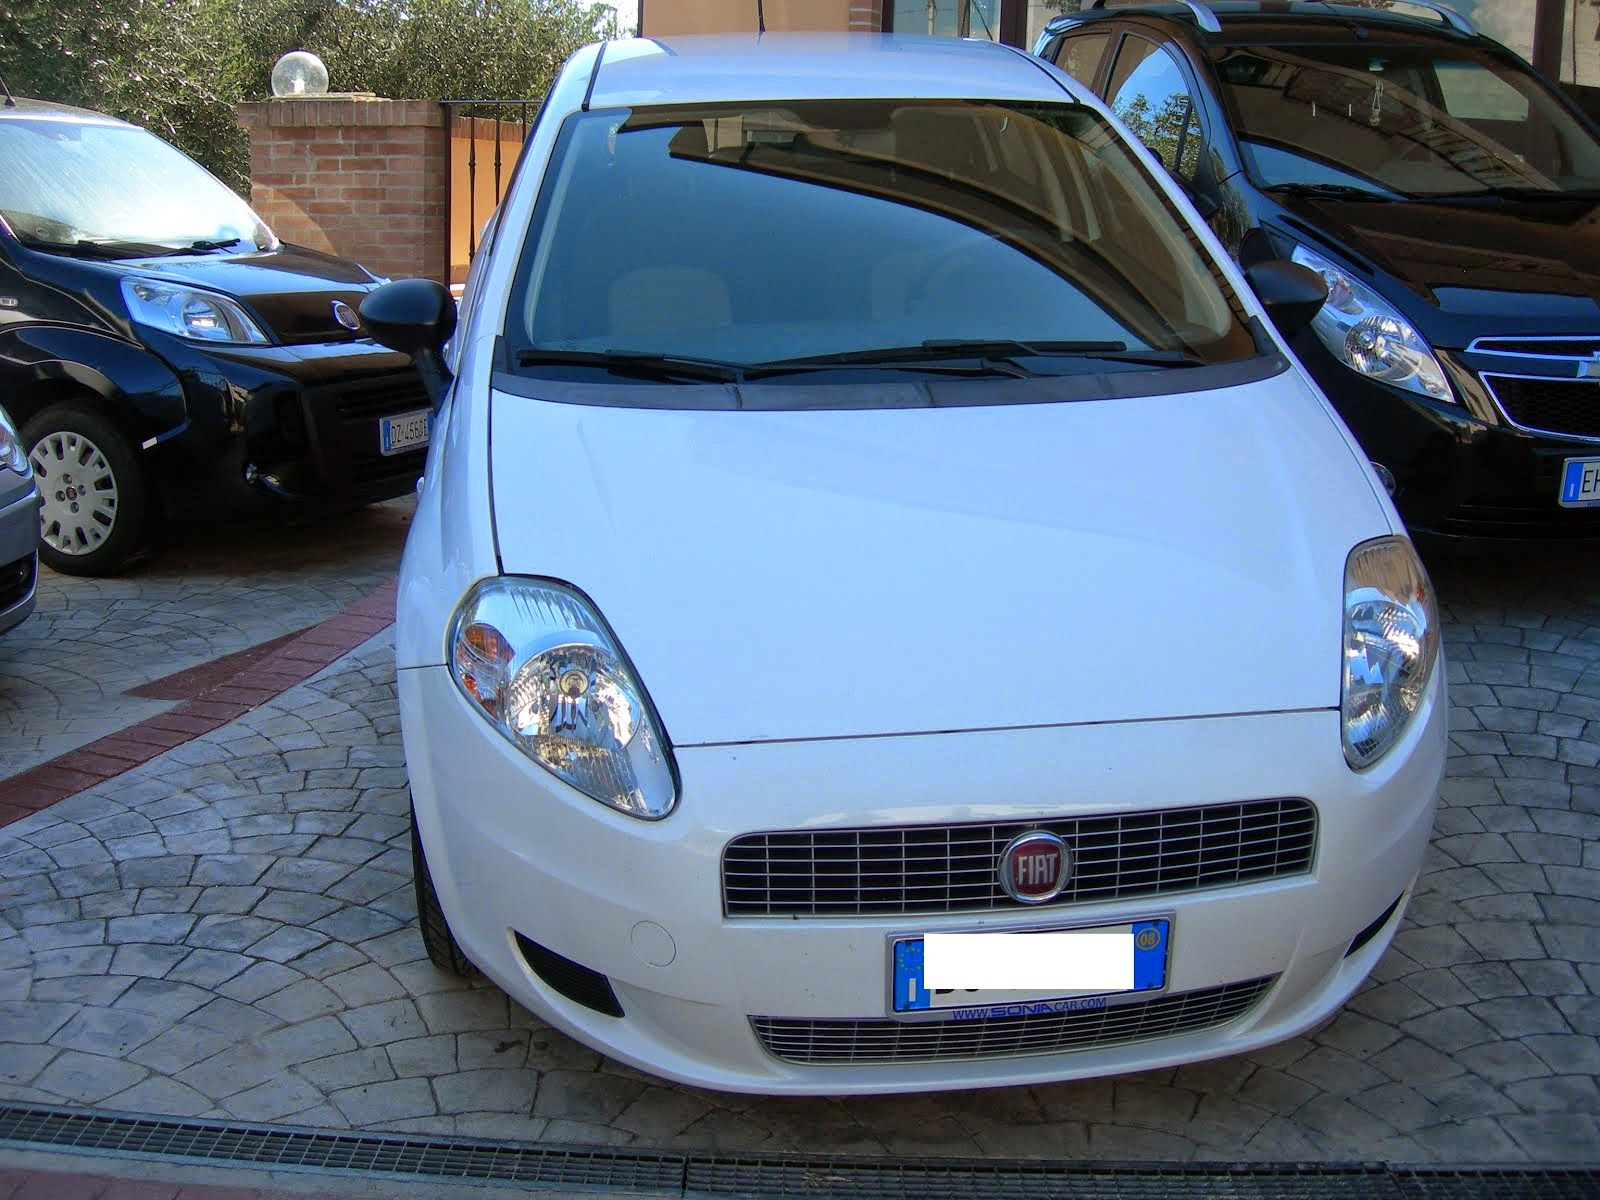 Fiat Grande Punto 1.4 Natural Power Metano mod.dinamyc 2008 6.500,00 euro